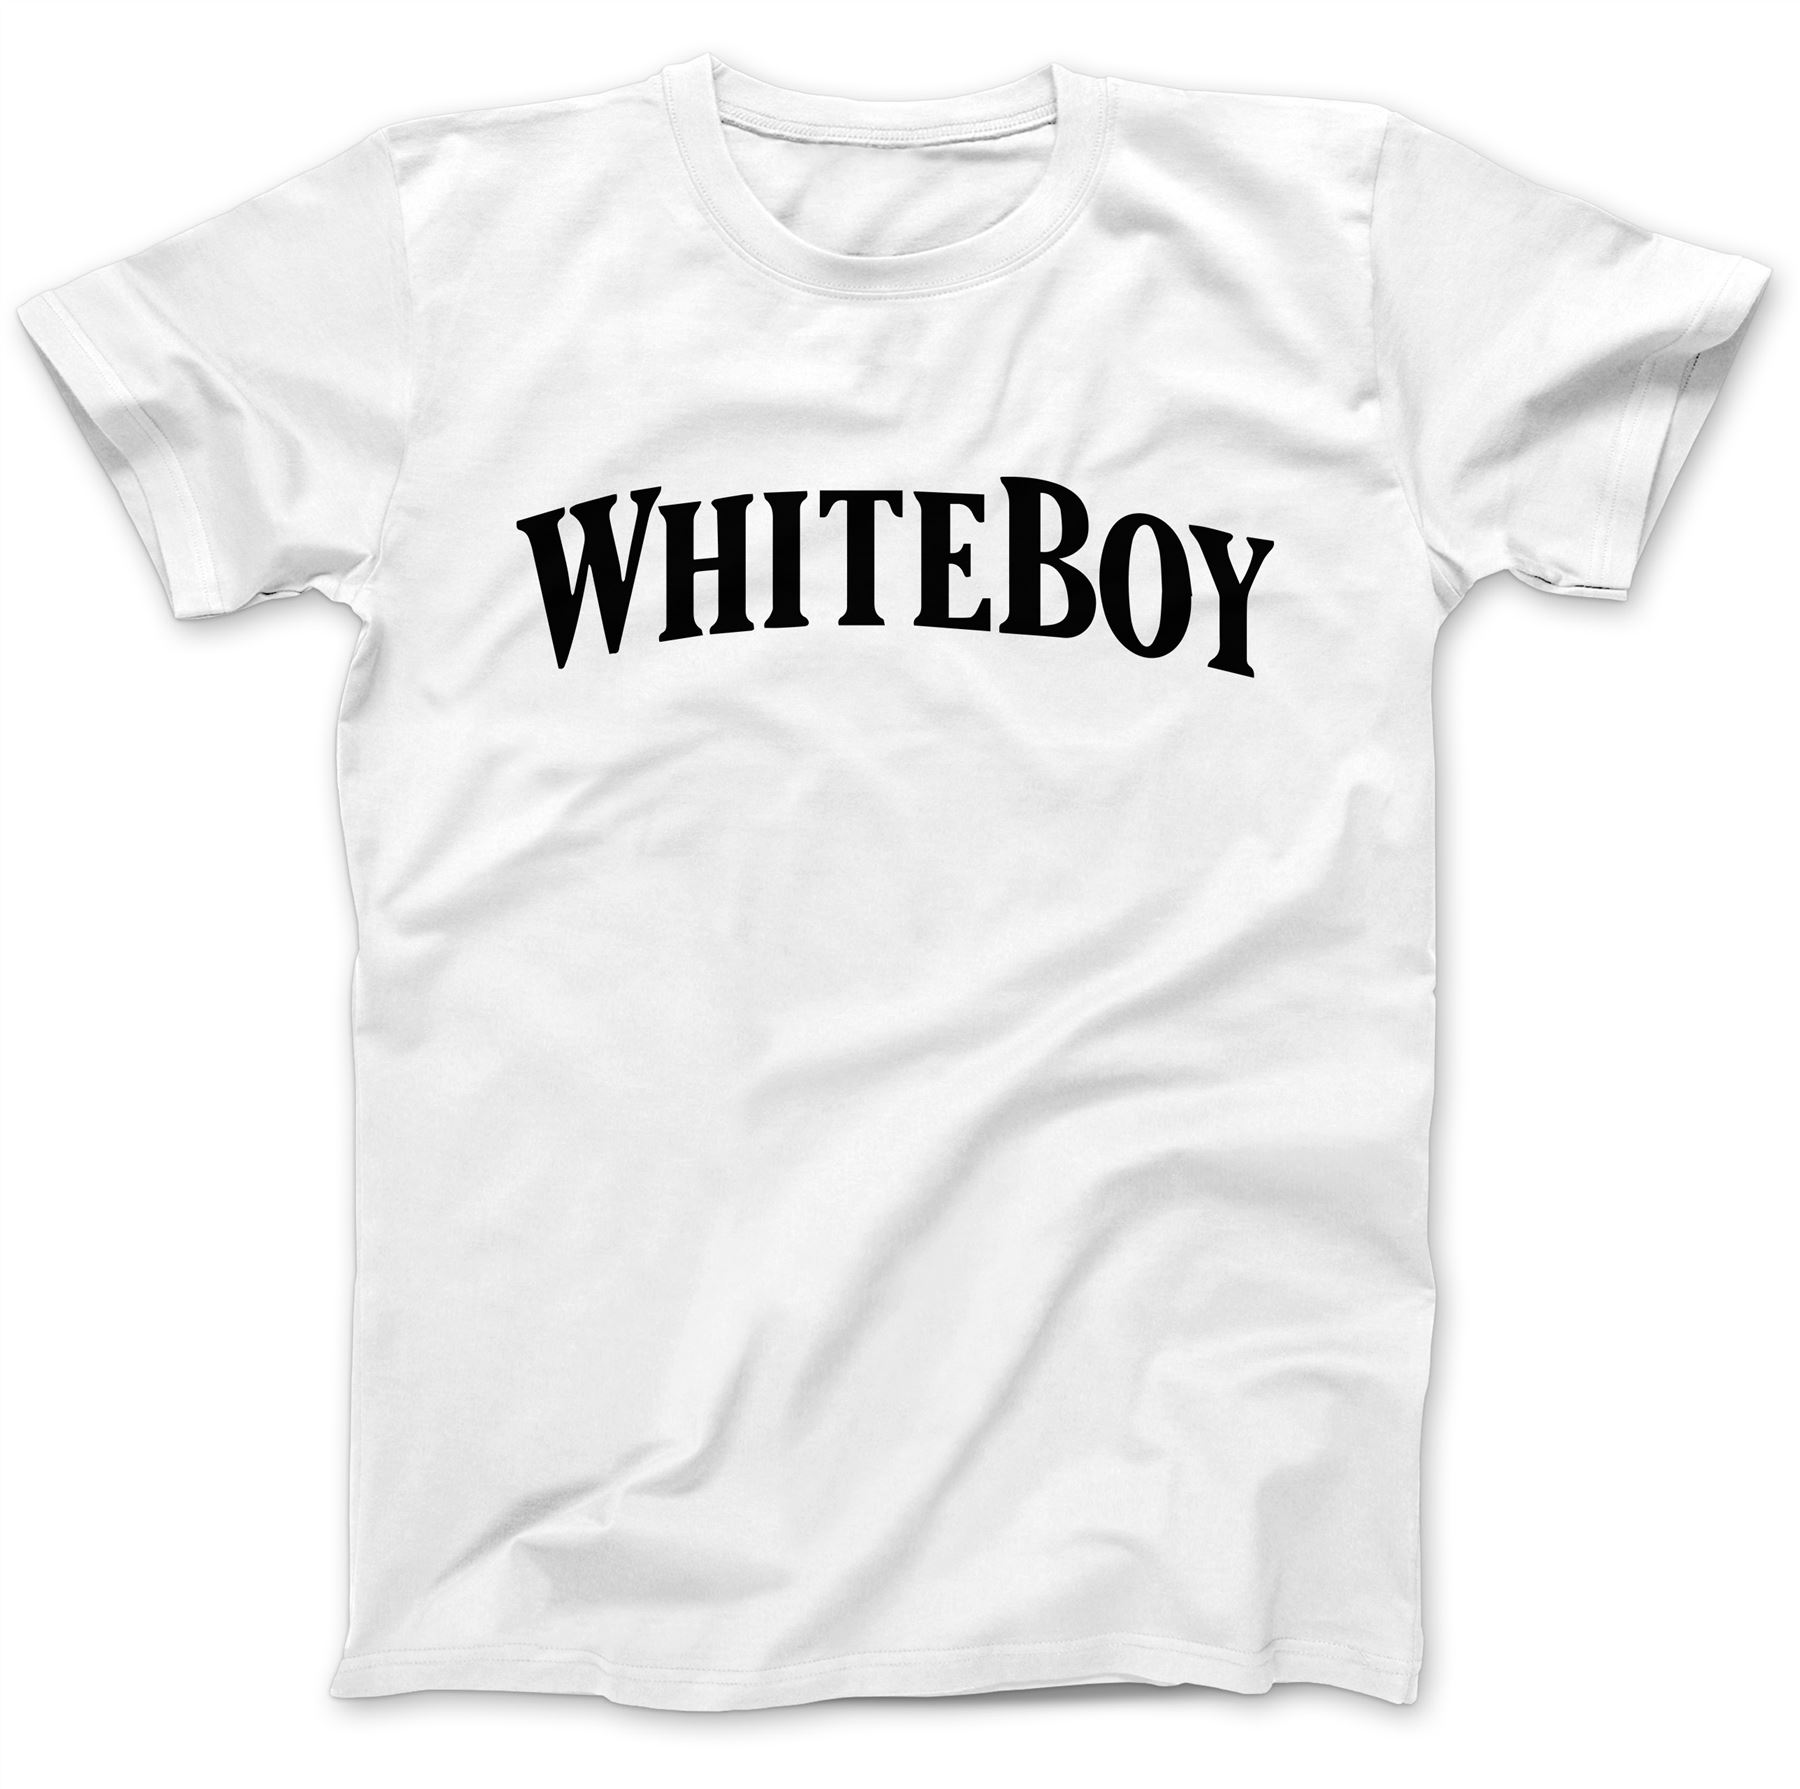 WhiteBoy As Worn By Tommy T-Shirt 100/% Premium Cotton Lee